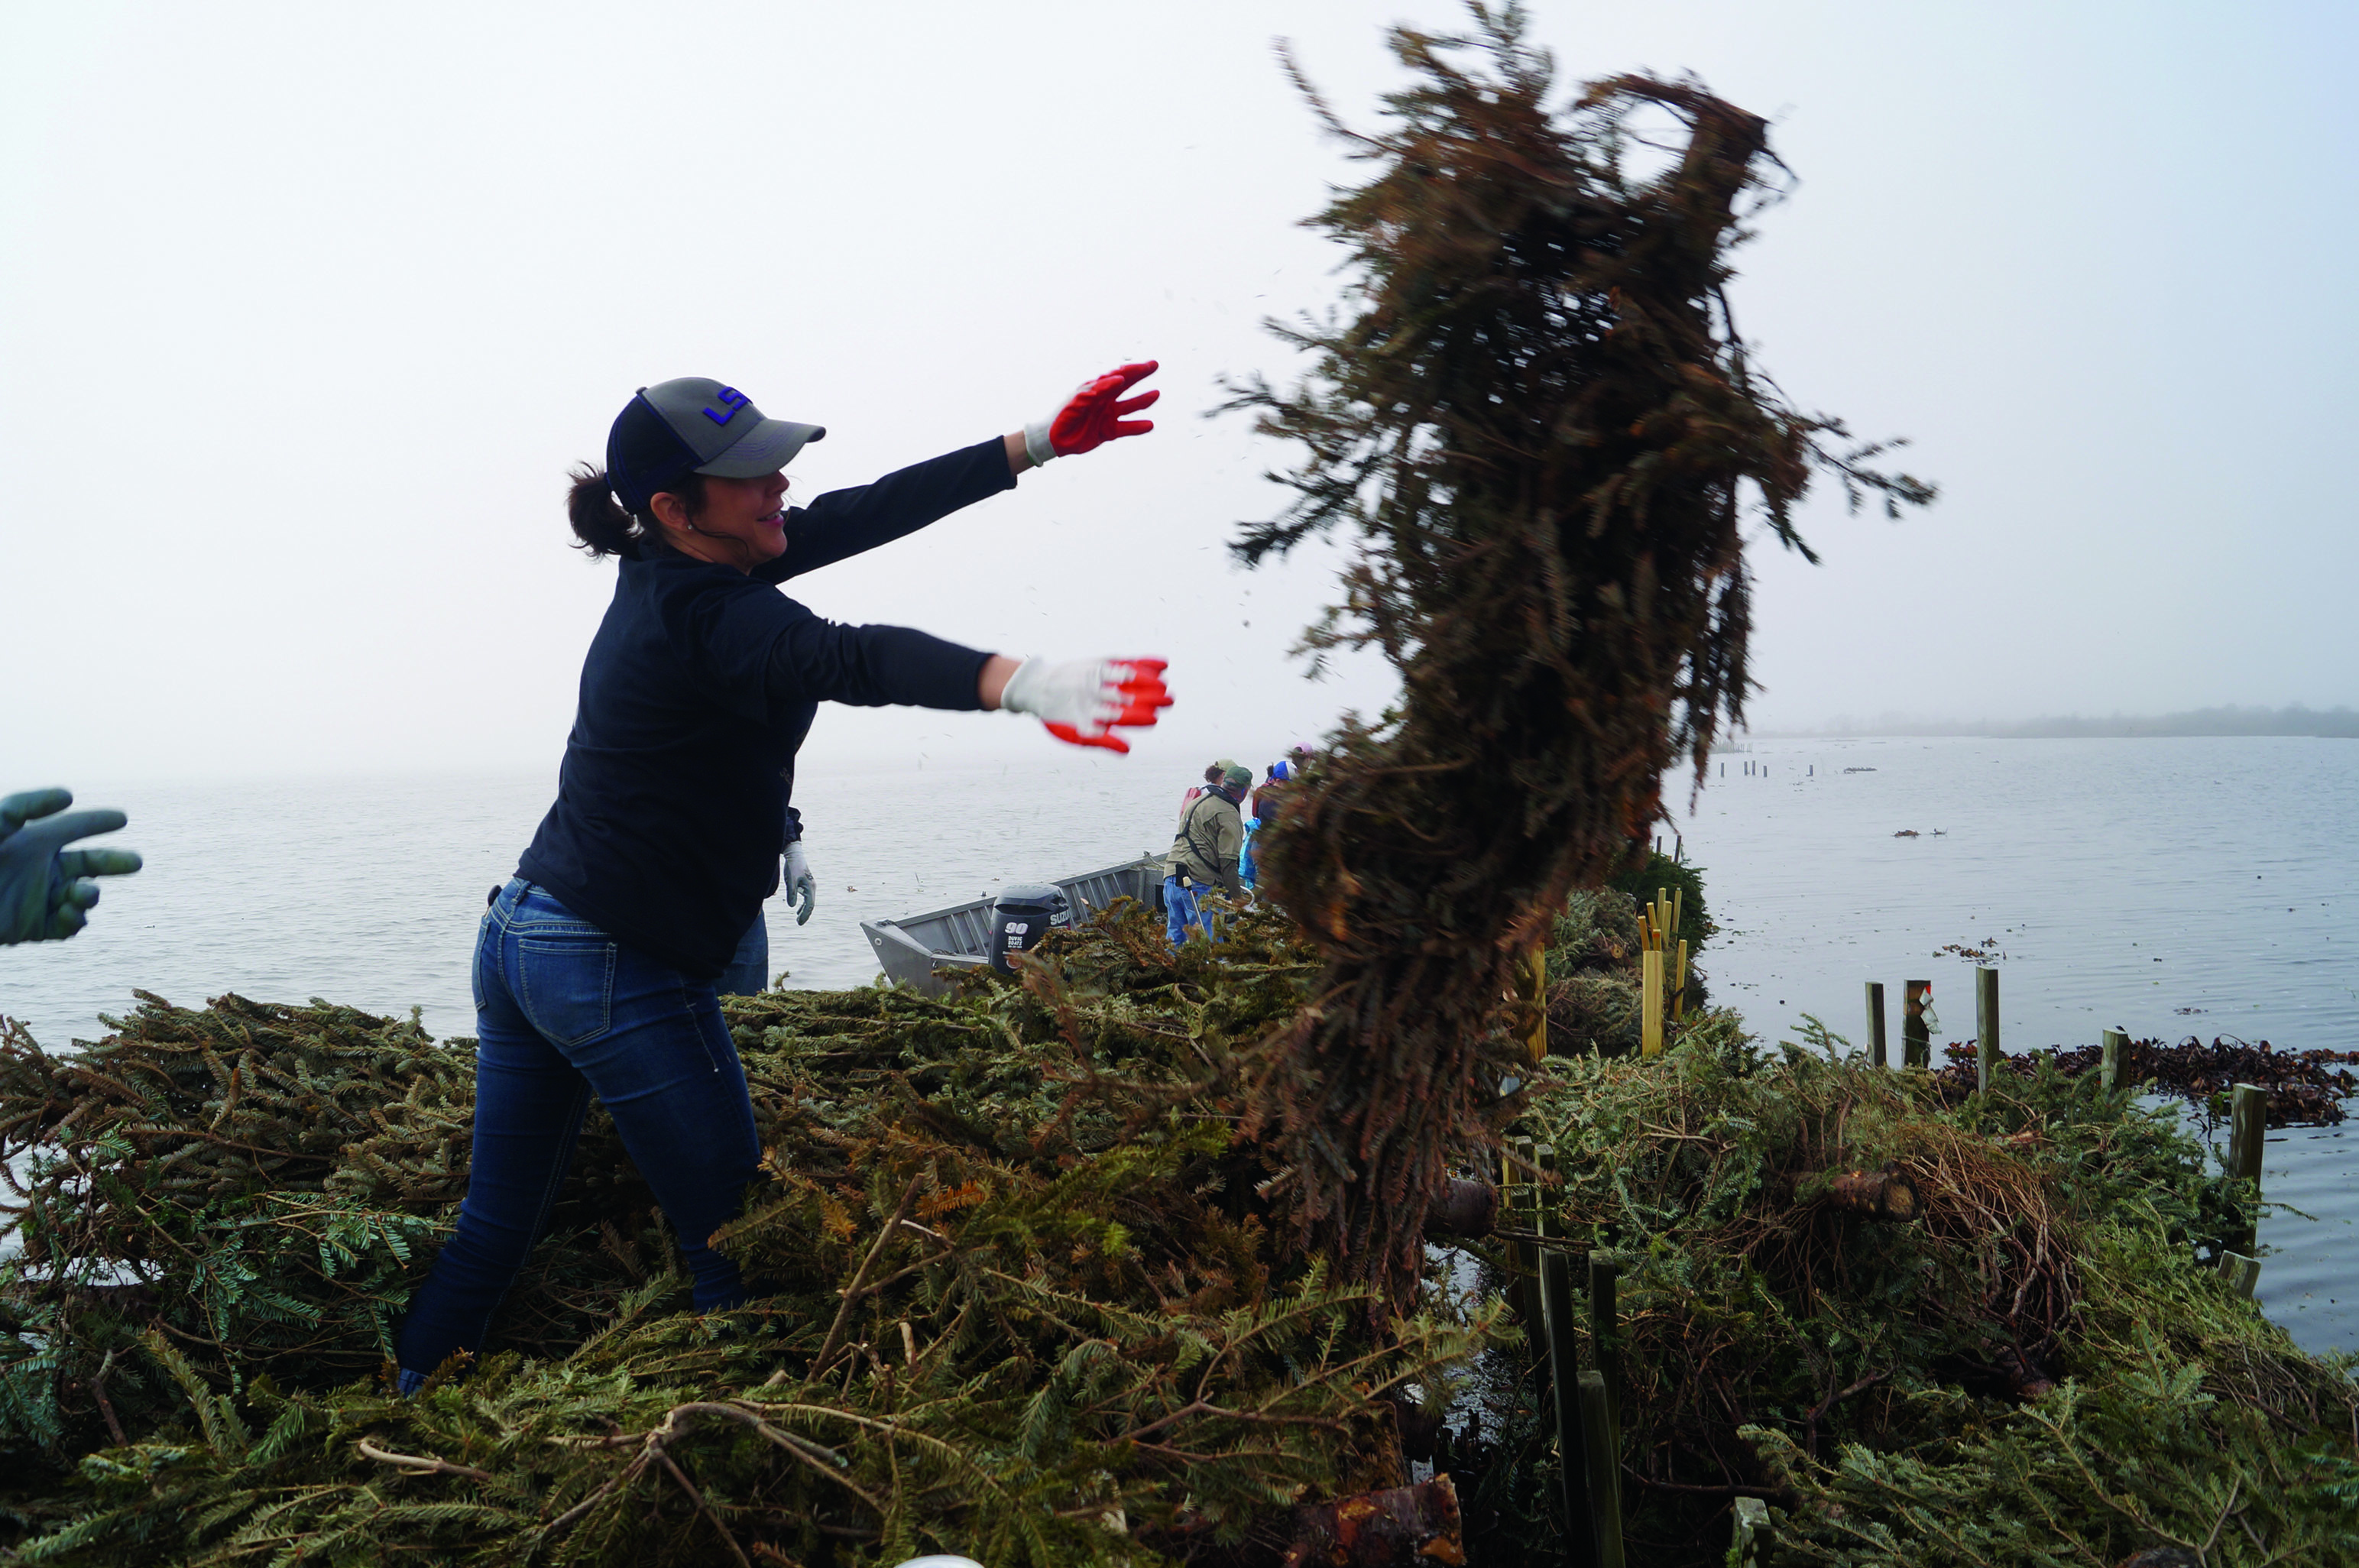 Stephanie Zimmerman, a volunteer with the coastal restoration project, throws a Christmas tree into a